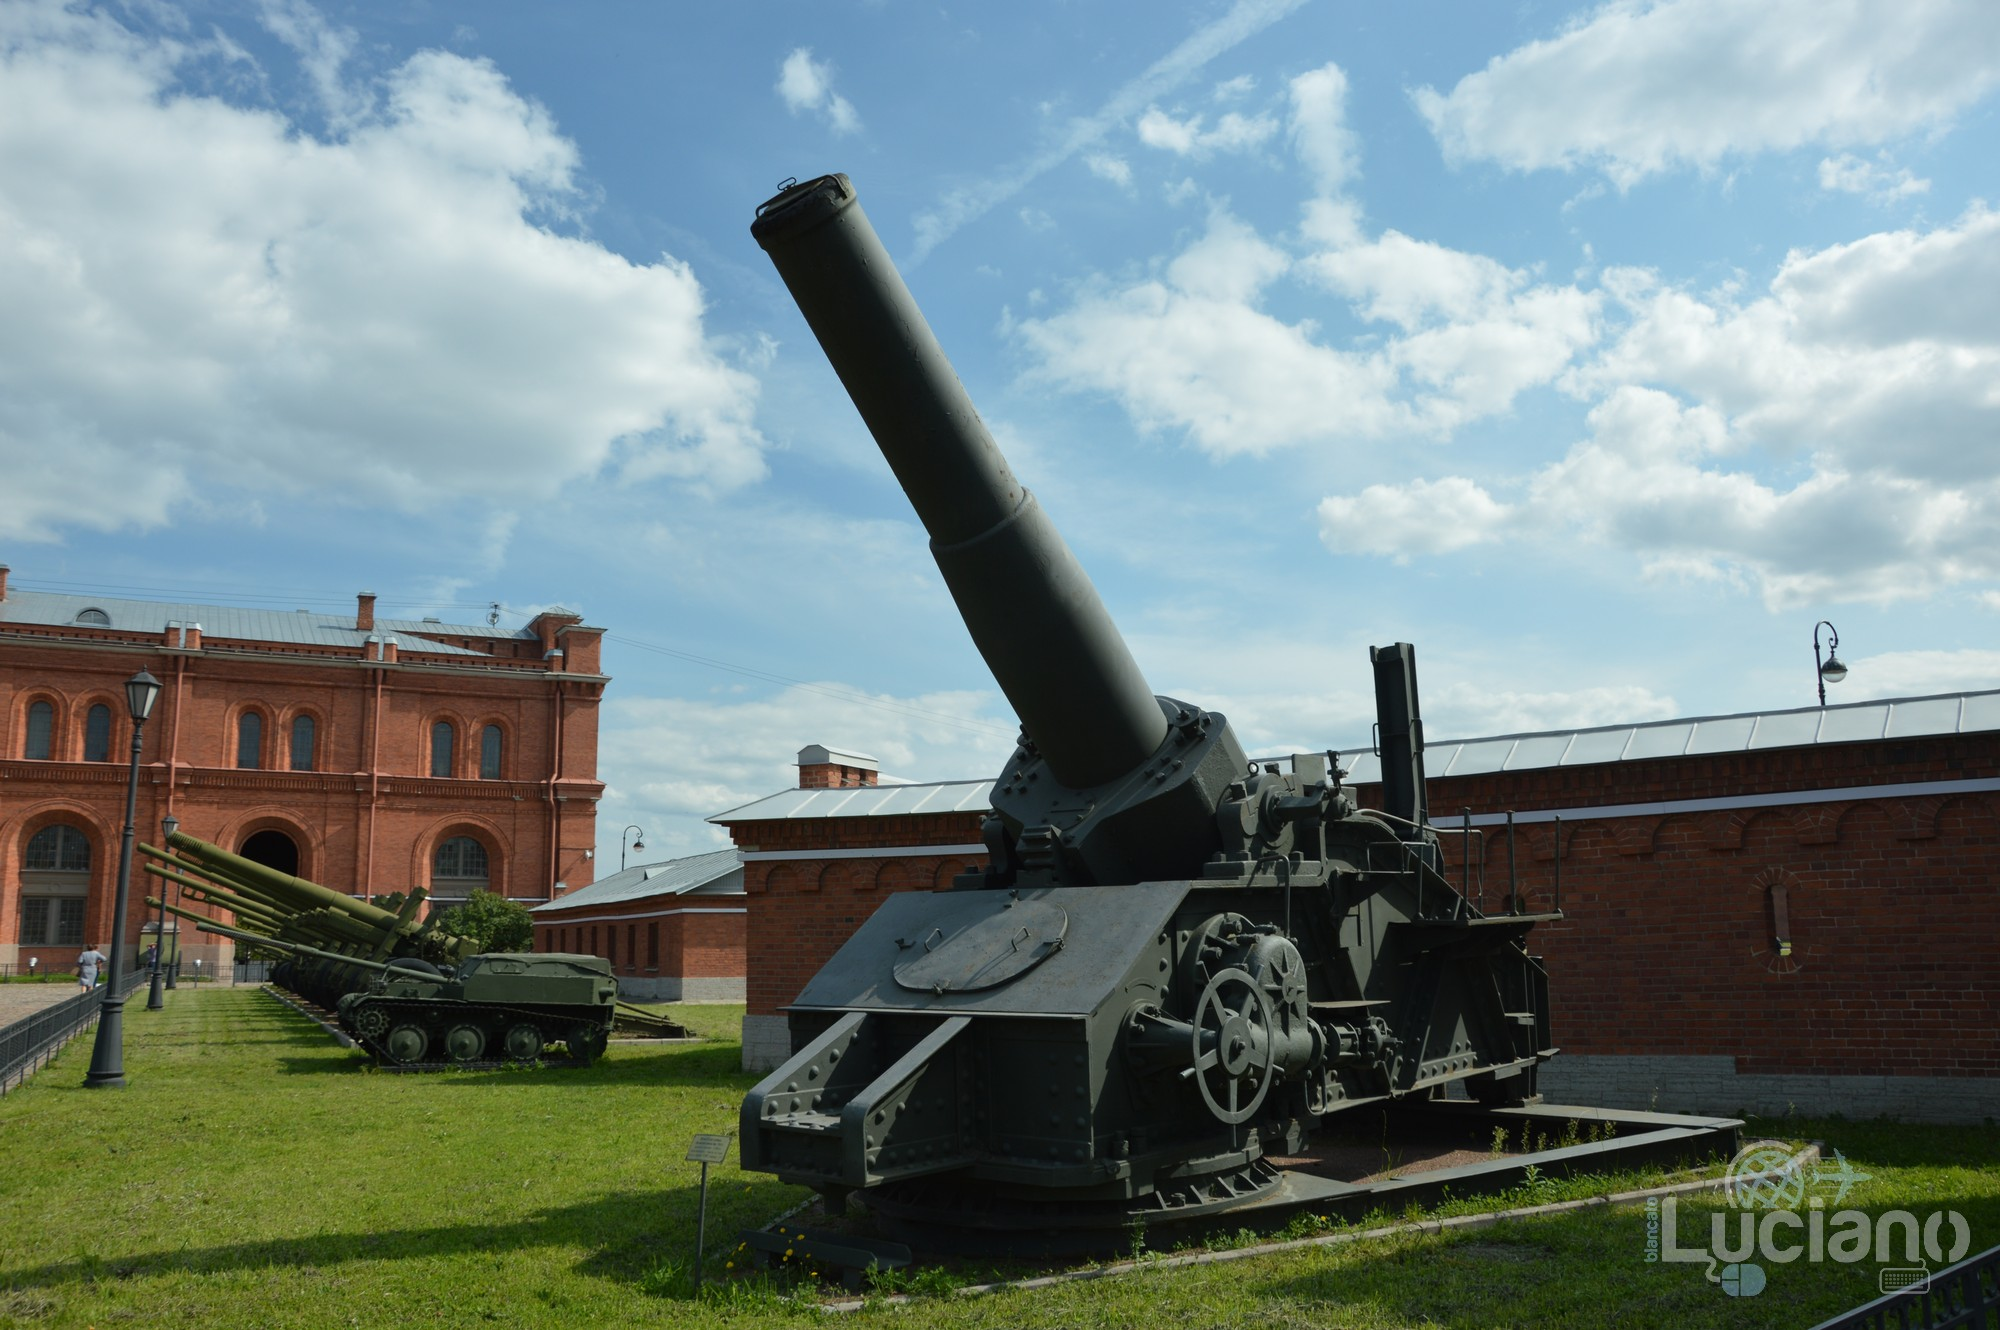 Military-Historical-Museum-of-Artillery-Engineer-and-Signal-Corps-St-Petersburg-Russia-Luciano-Blancato- (10)